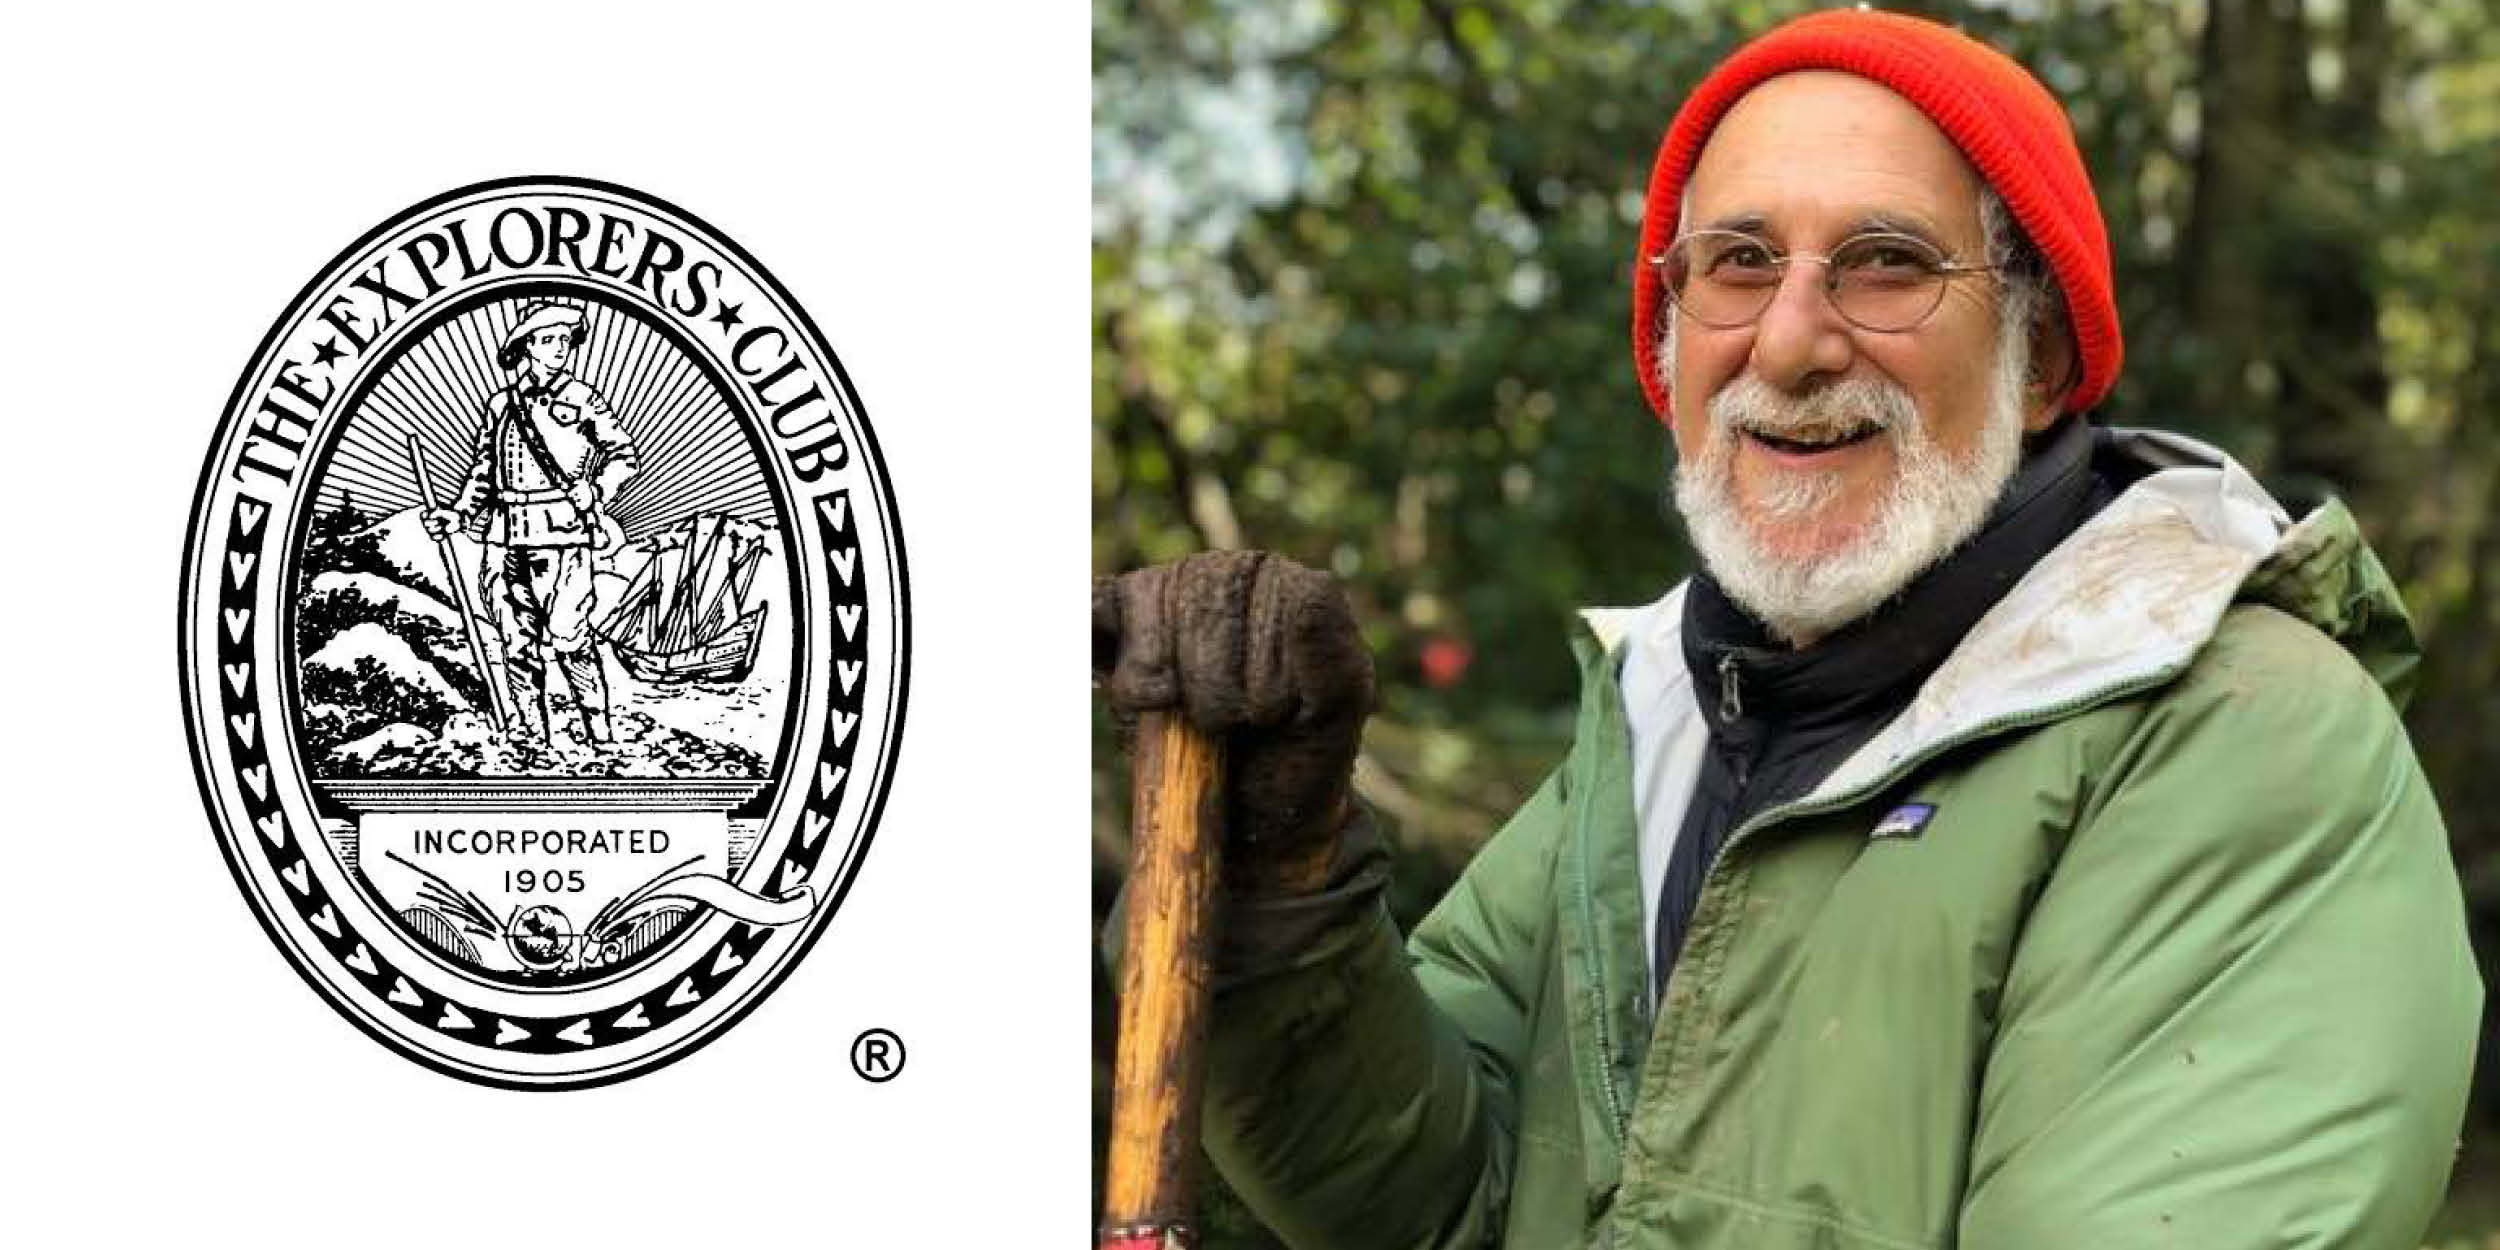 TIRN Executive Director Inducted Into Highly Exclusive Explorers Club